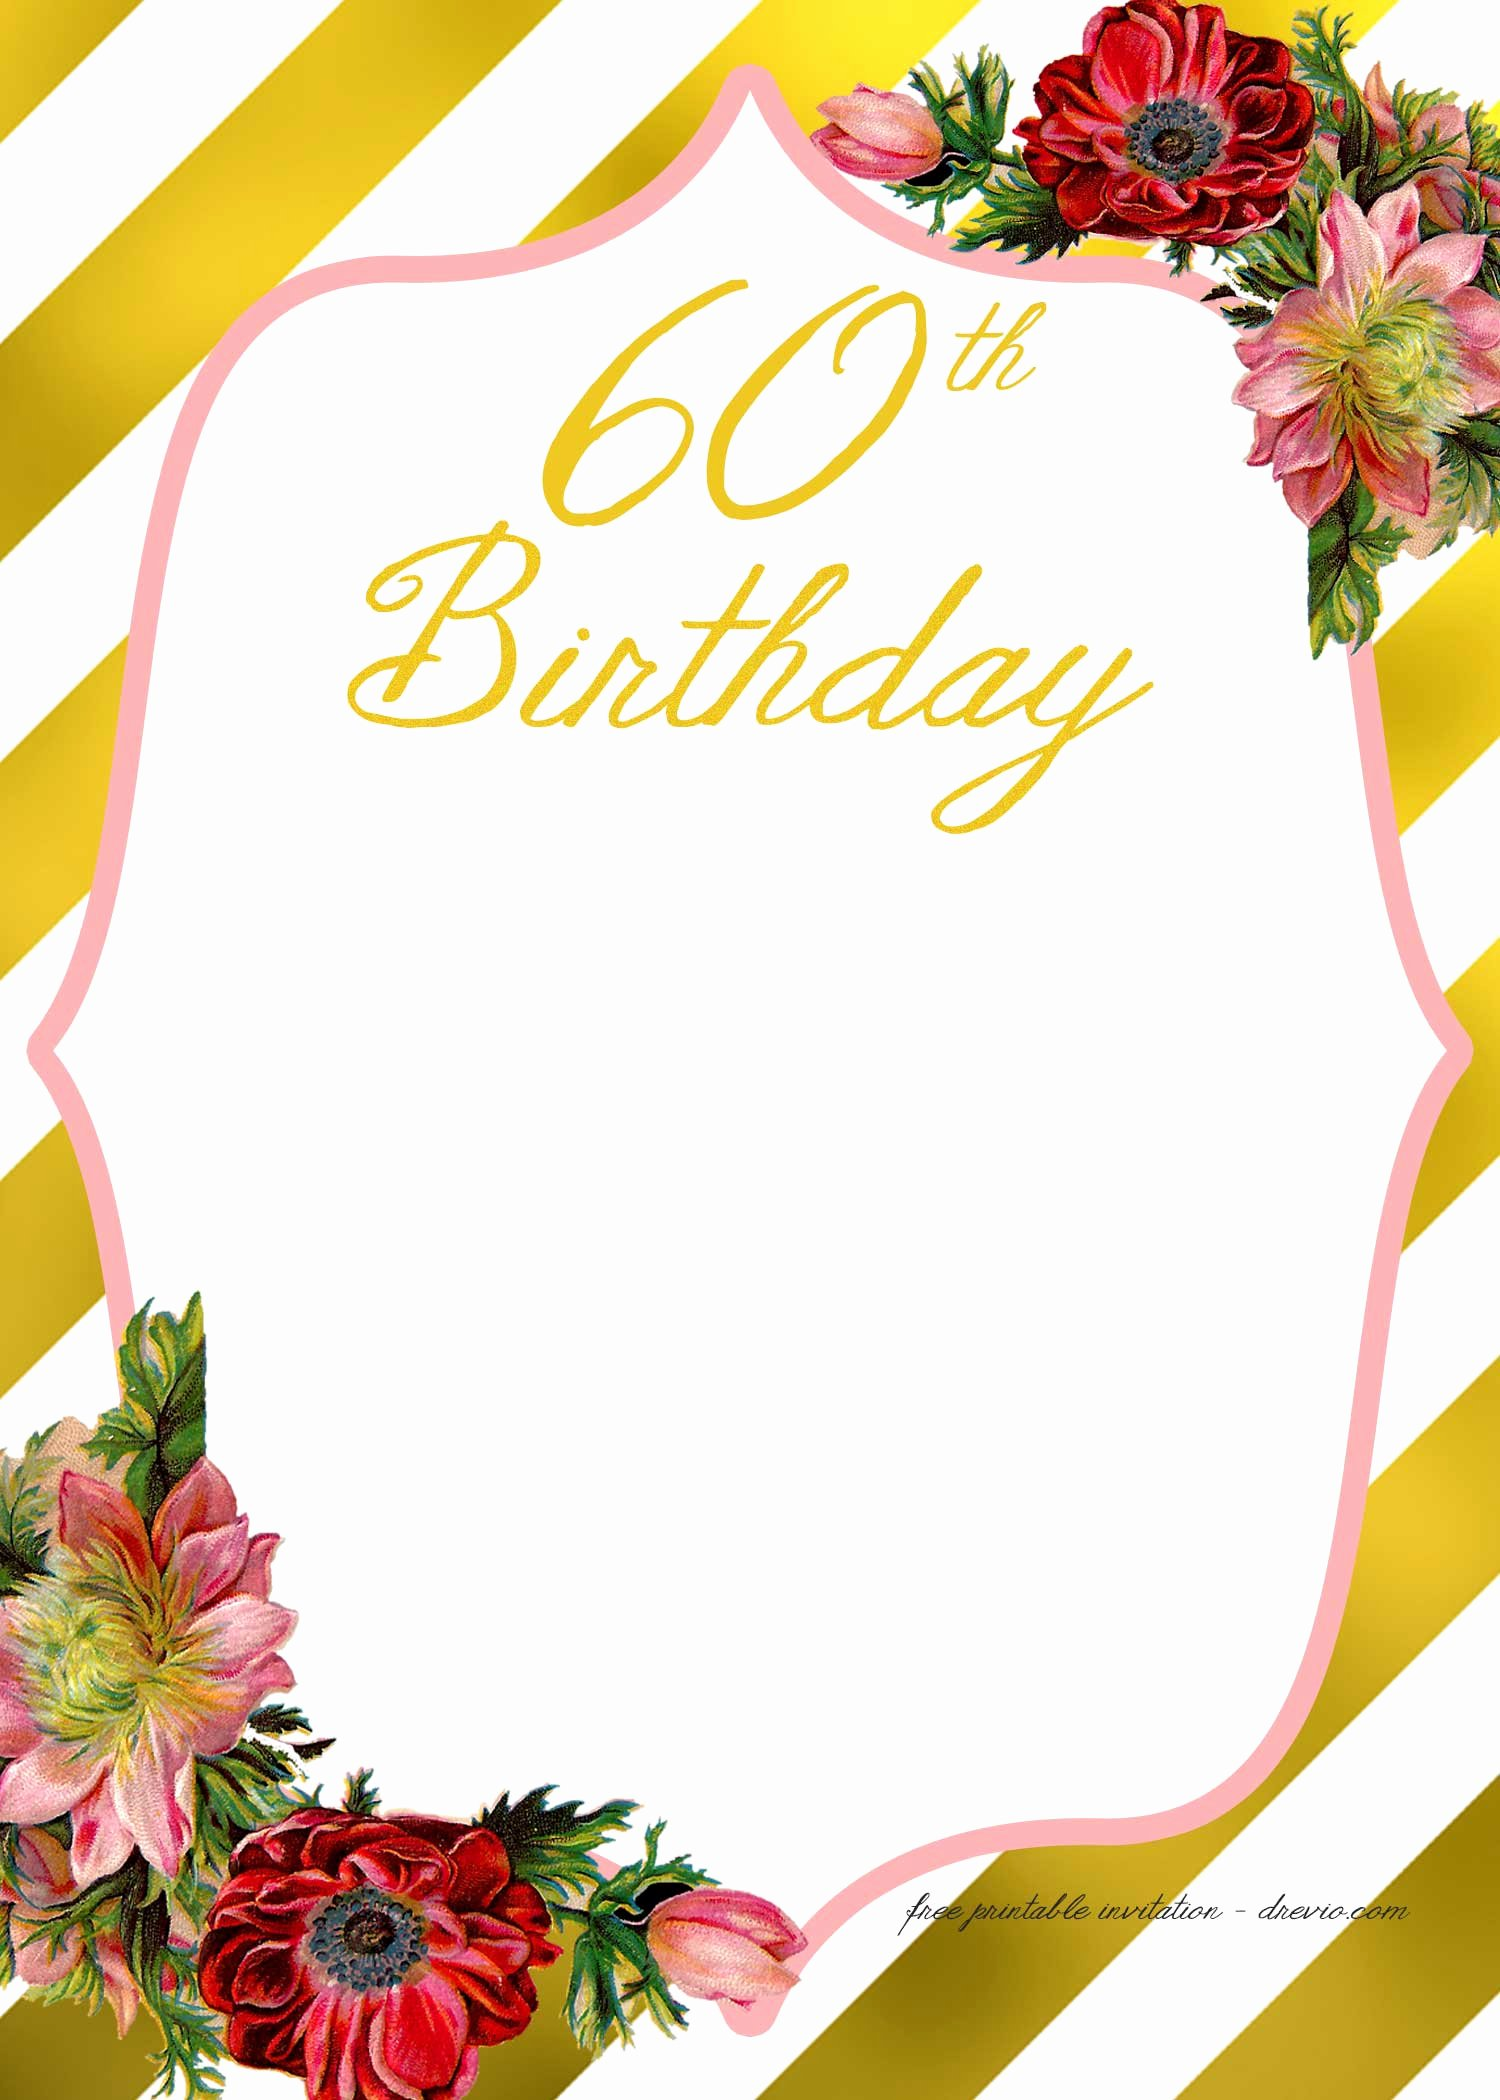 Free Anniversary Invitation Templates Luxury Adult Birthday Invitations Template for 50th Years Old